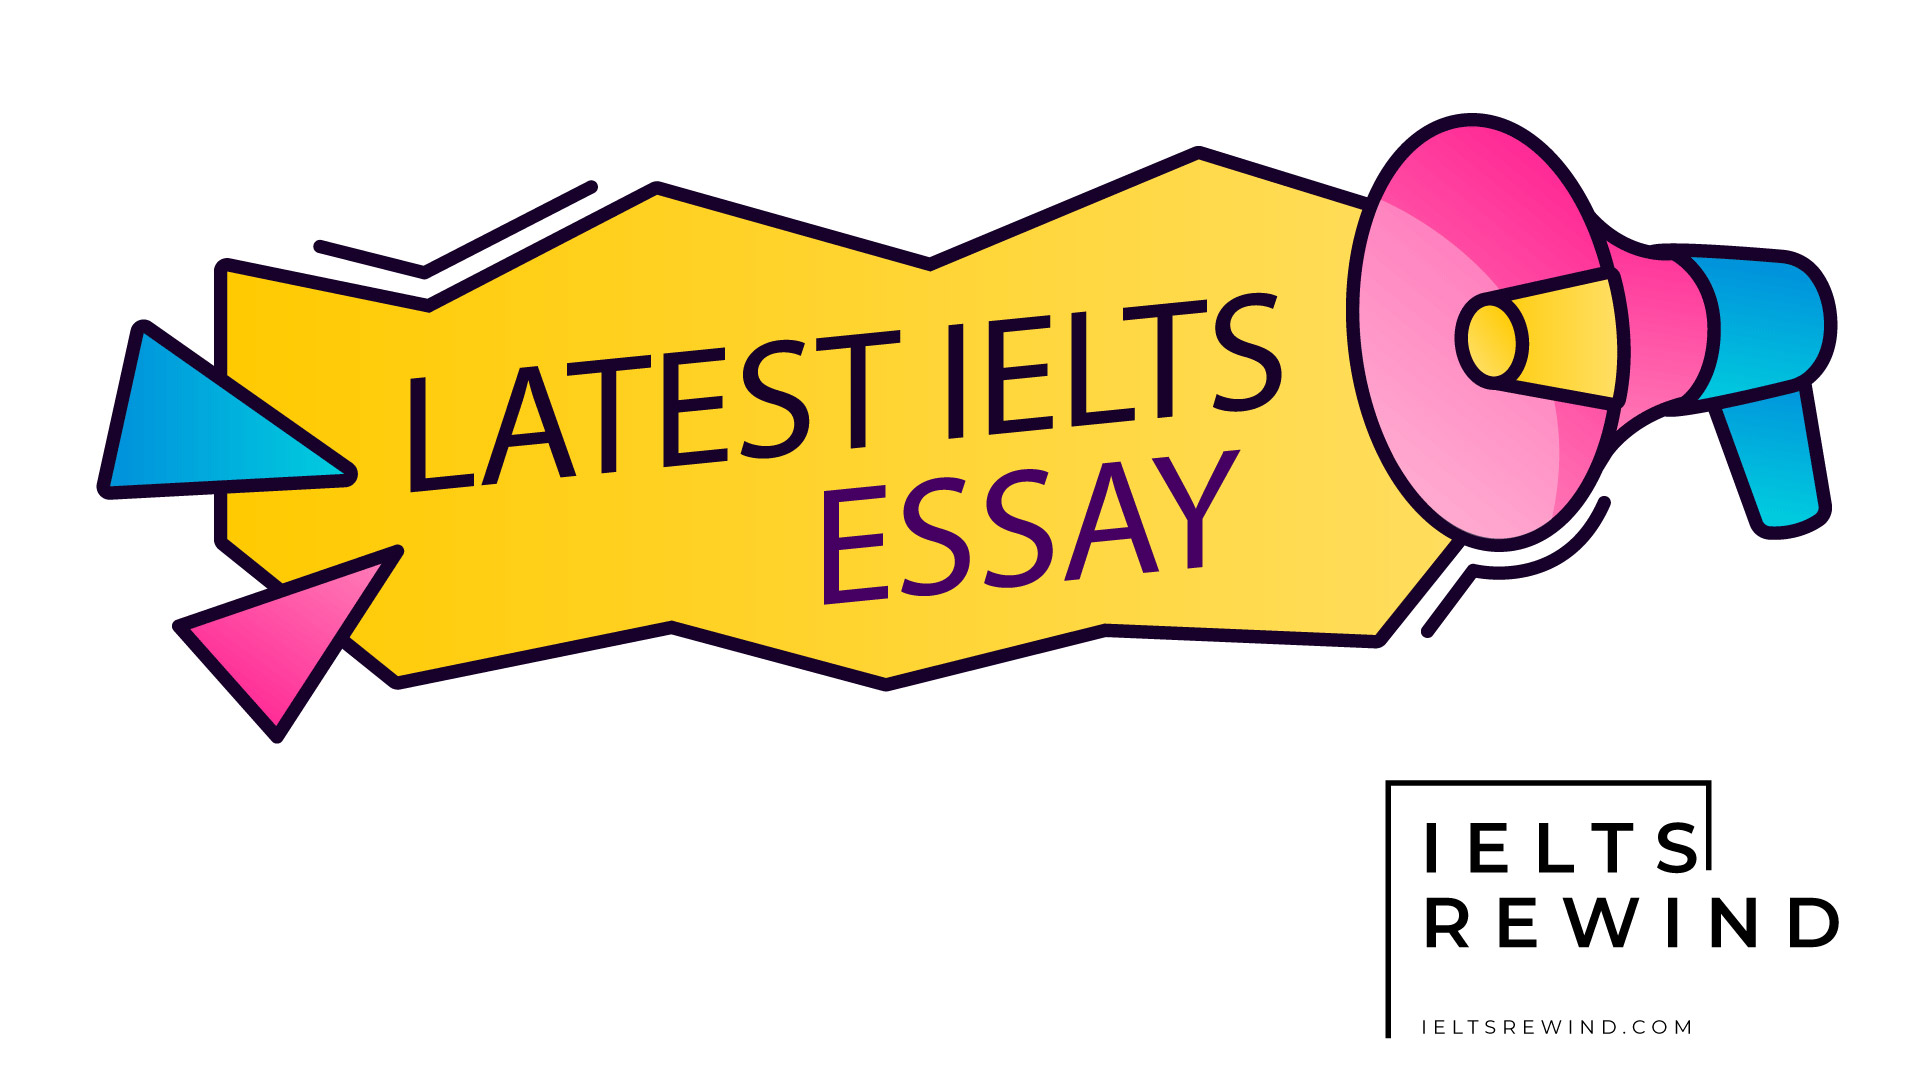 2020 LATEST IELTS ESSAY TOPIC